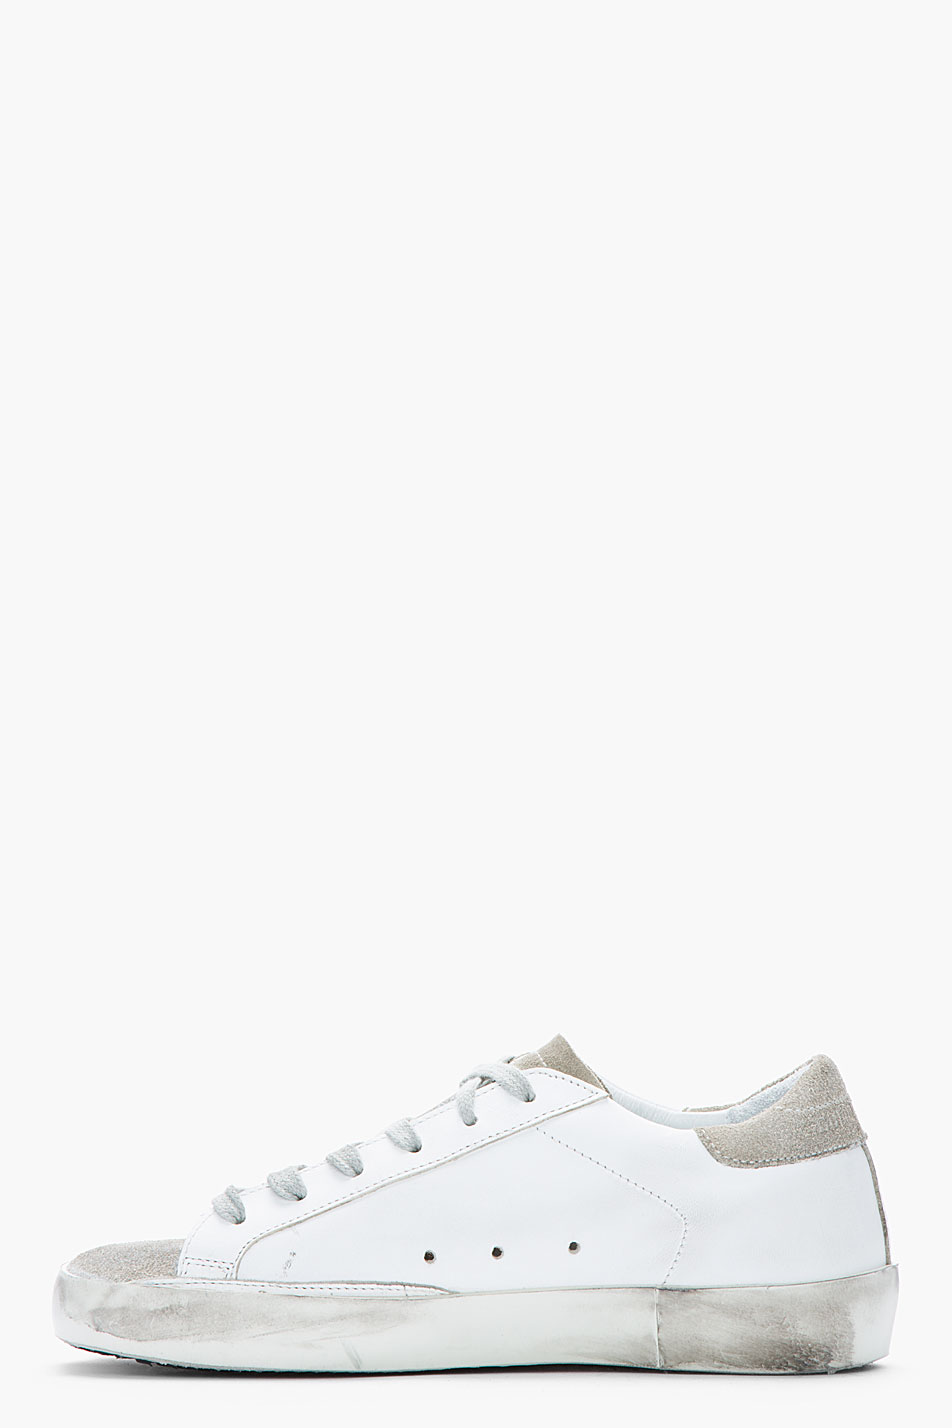 vqadm golden goose superstar sneaker white -